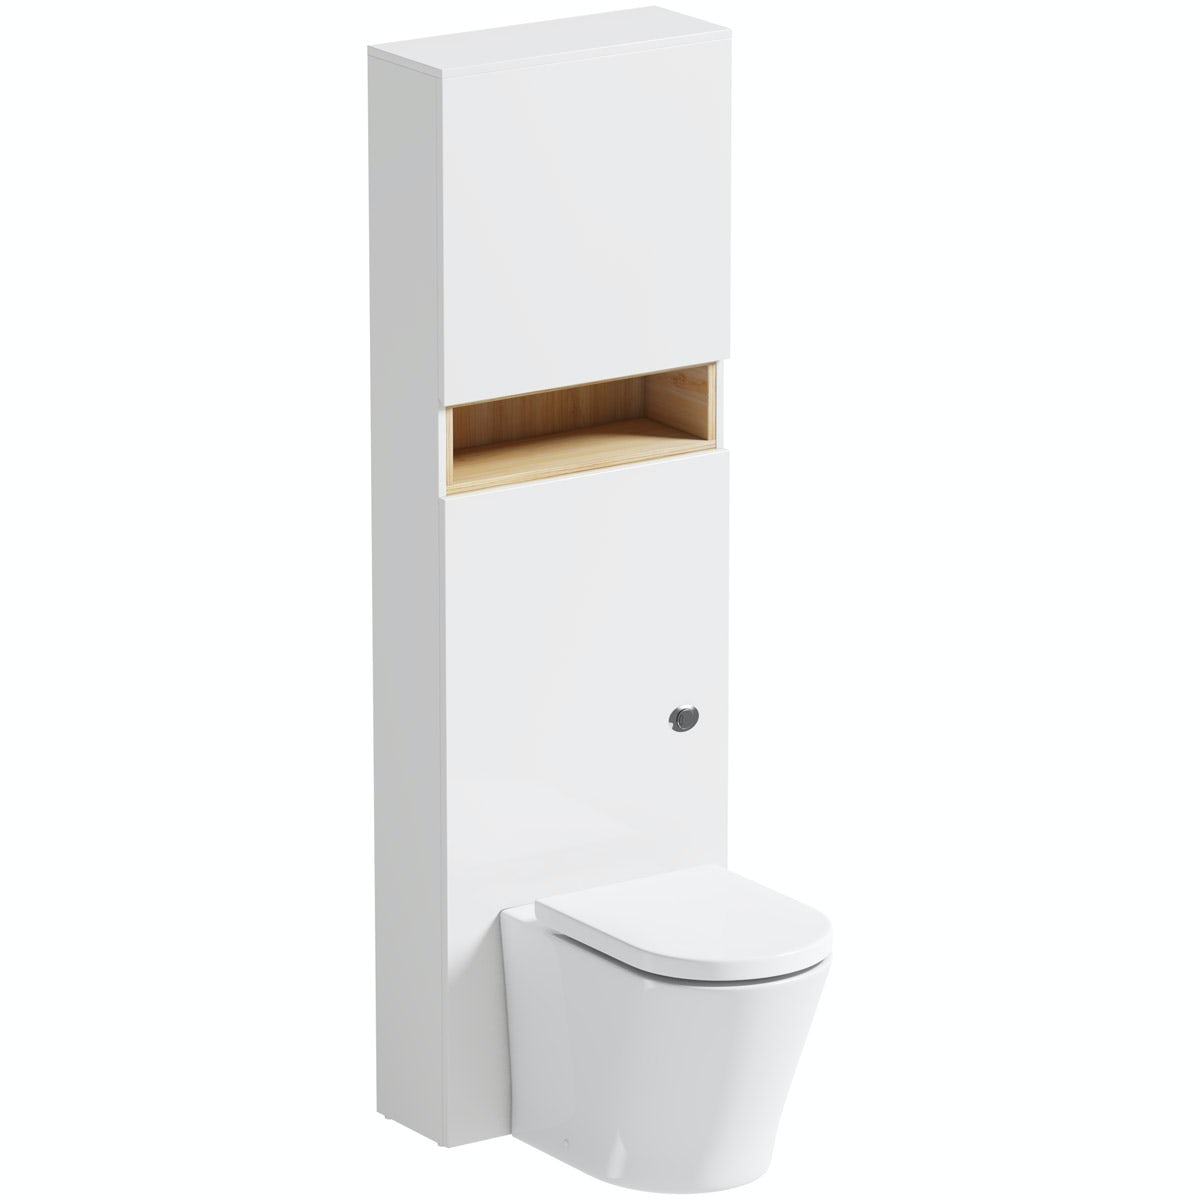 Mode Tate white & oak tall slimline toilet unit with contemporary toilet and seat